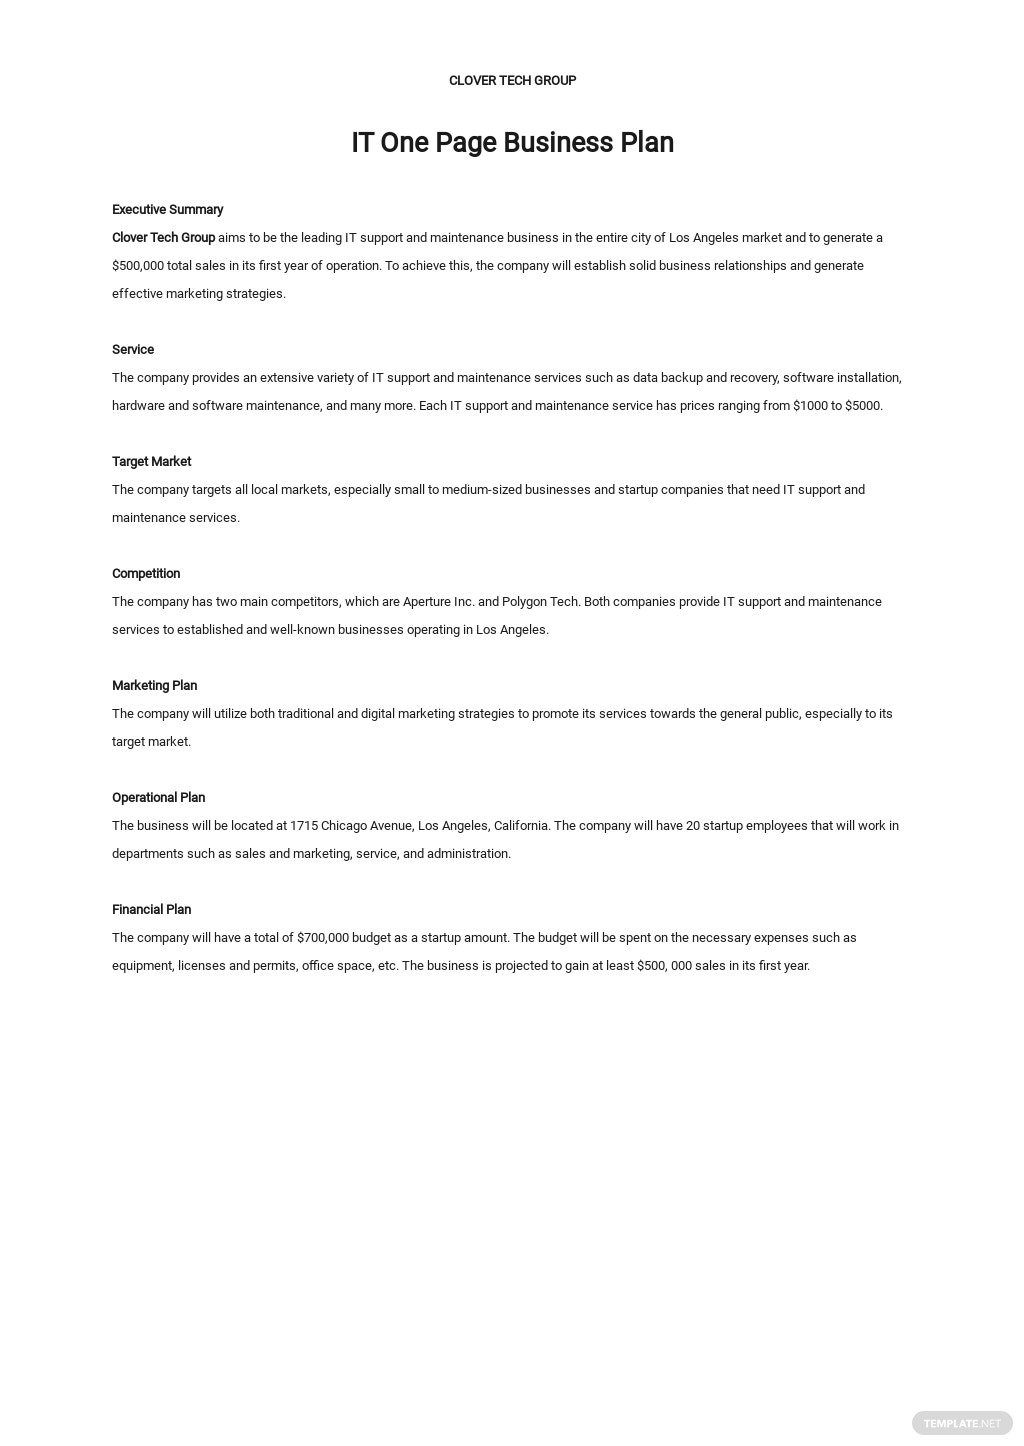 Sample IT One Page Business Plan Template